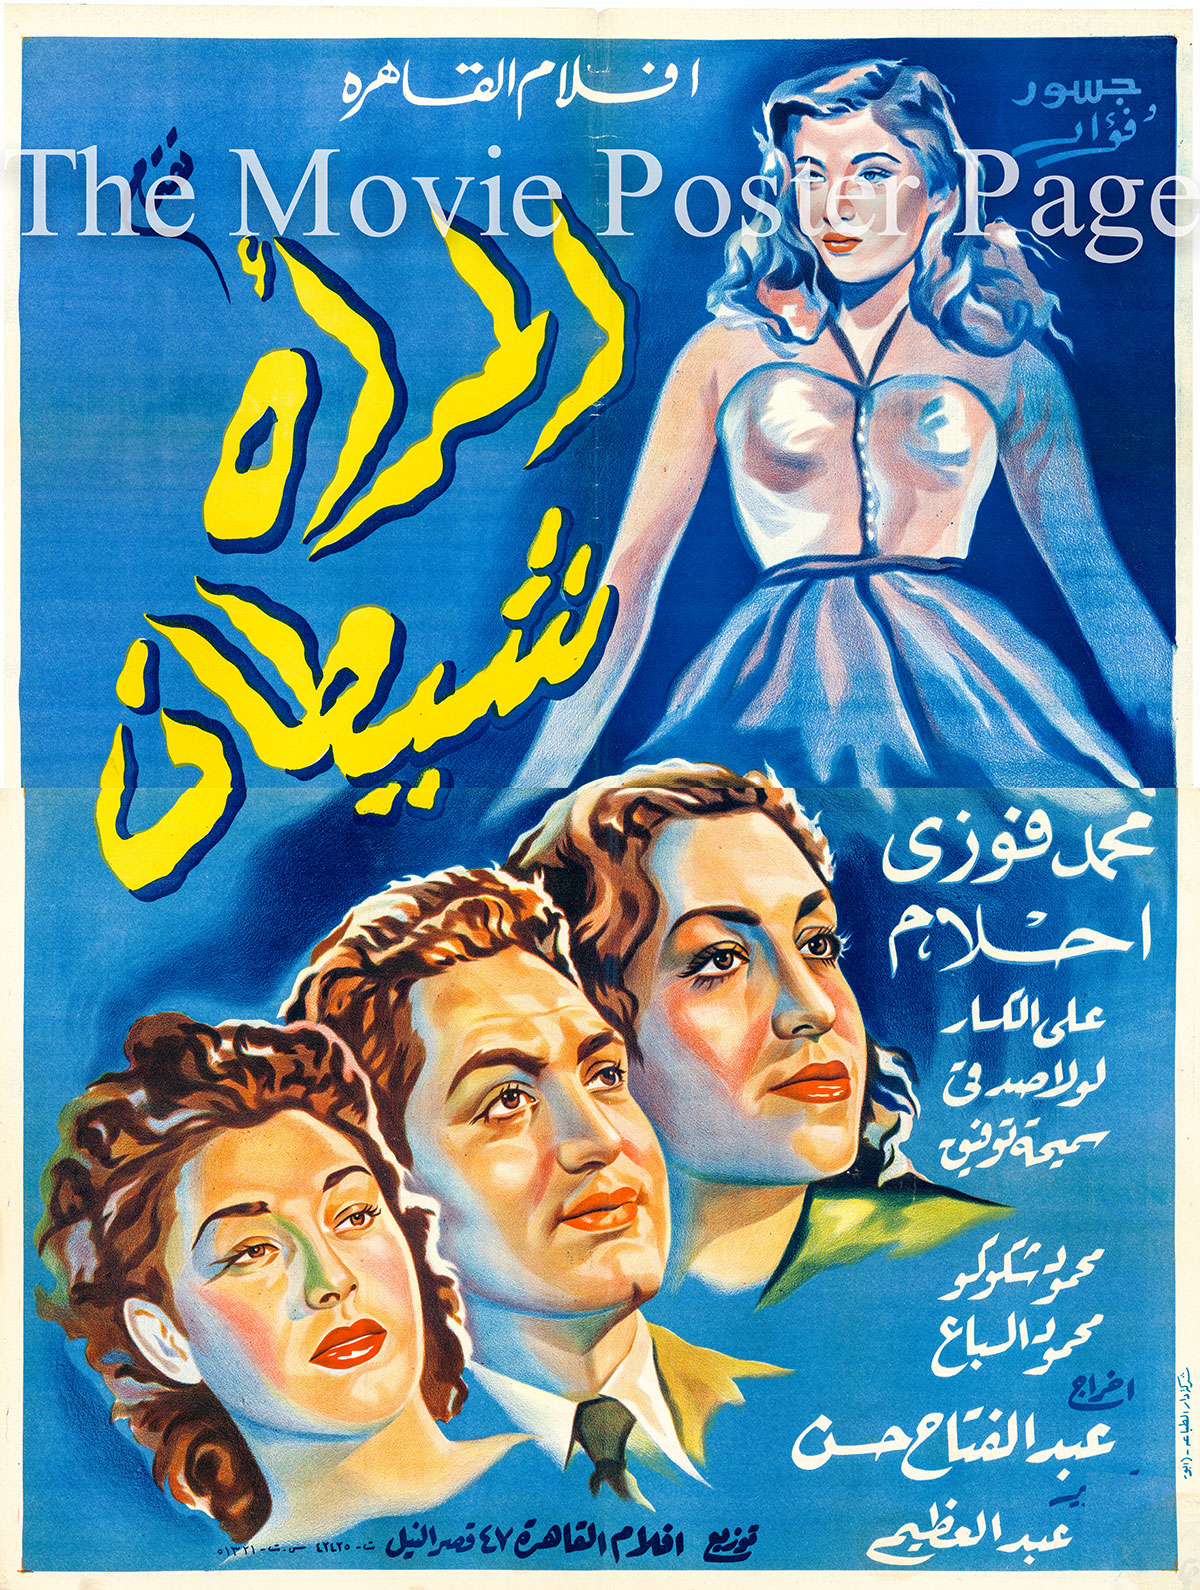 Pictured is an Egyptian promotional poster for the 1949 Abdel Fattah Hassan film The Woman Is a Devil starring Mohammad Fawzi.